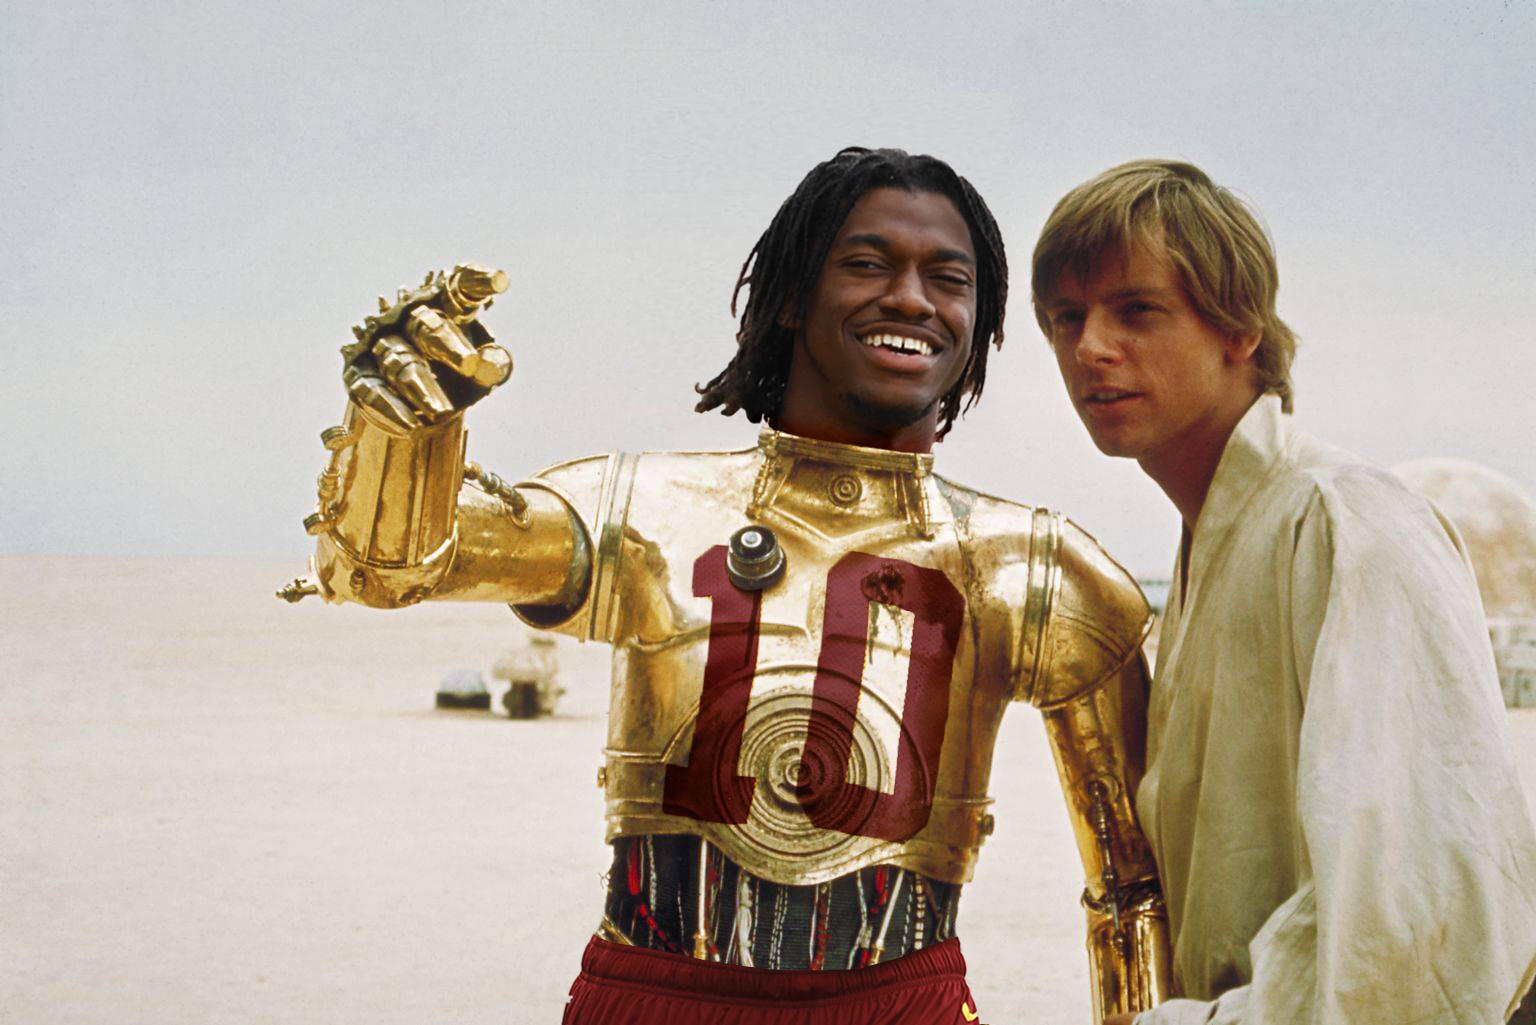 I want to introduce RG3PO, my fantasy football league mascot. Say hello. #nfl #fantasyfootball #rg3 #rg3po http://t.co/0lE3ak7u